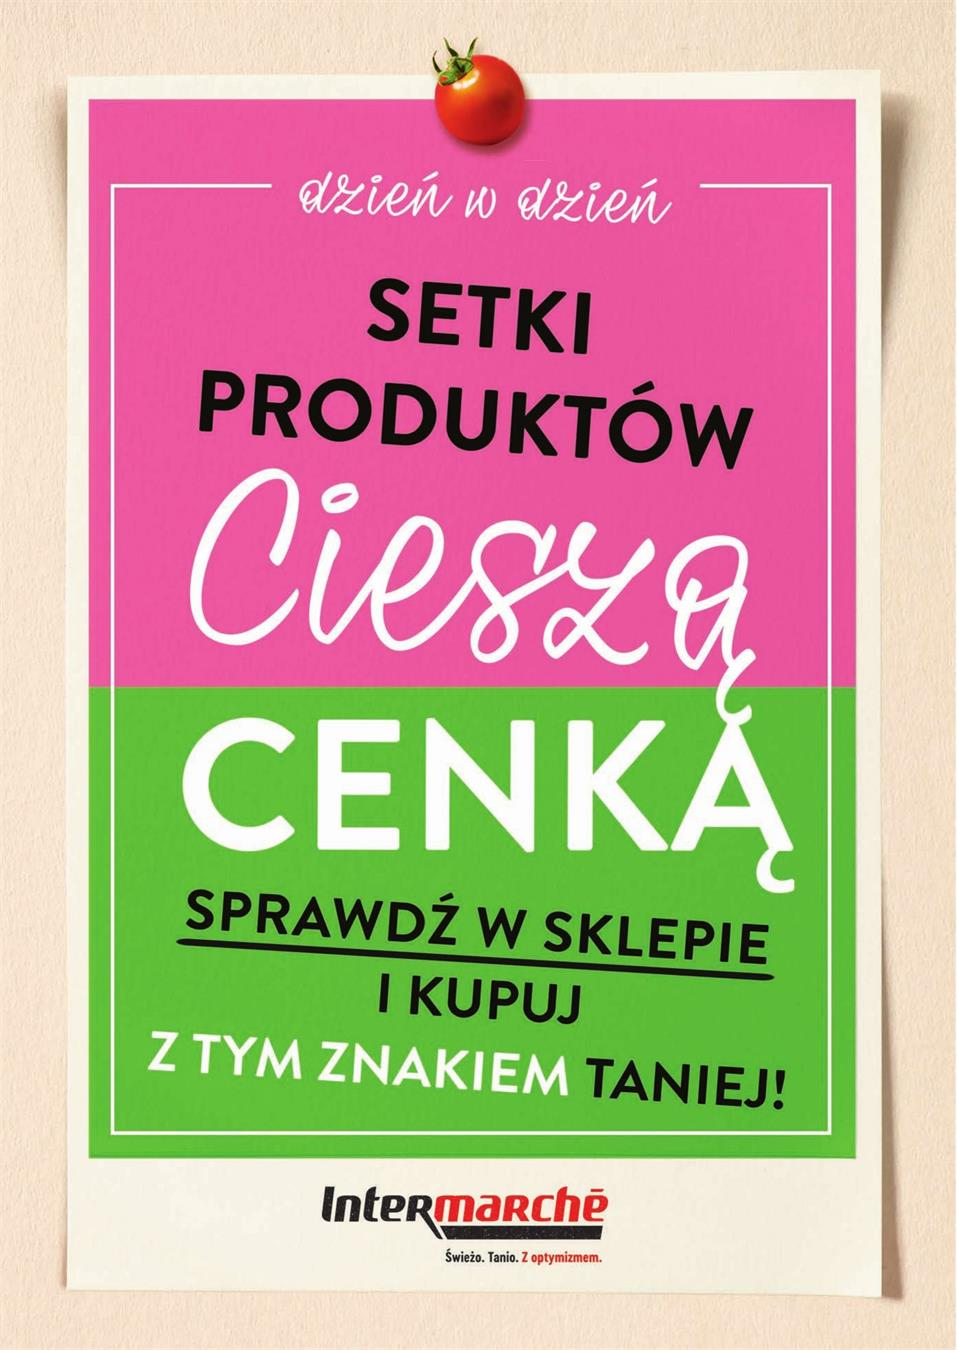 Gazetka SCA PR Polska Sp. z o.o. nr 4 od 2019-06-25 do 2019-07-01